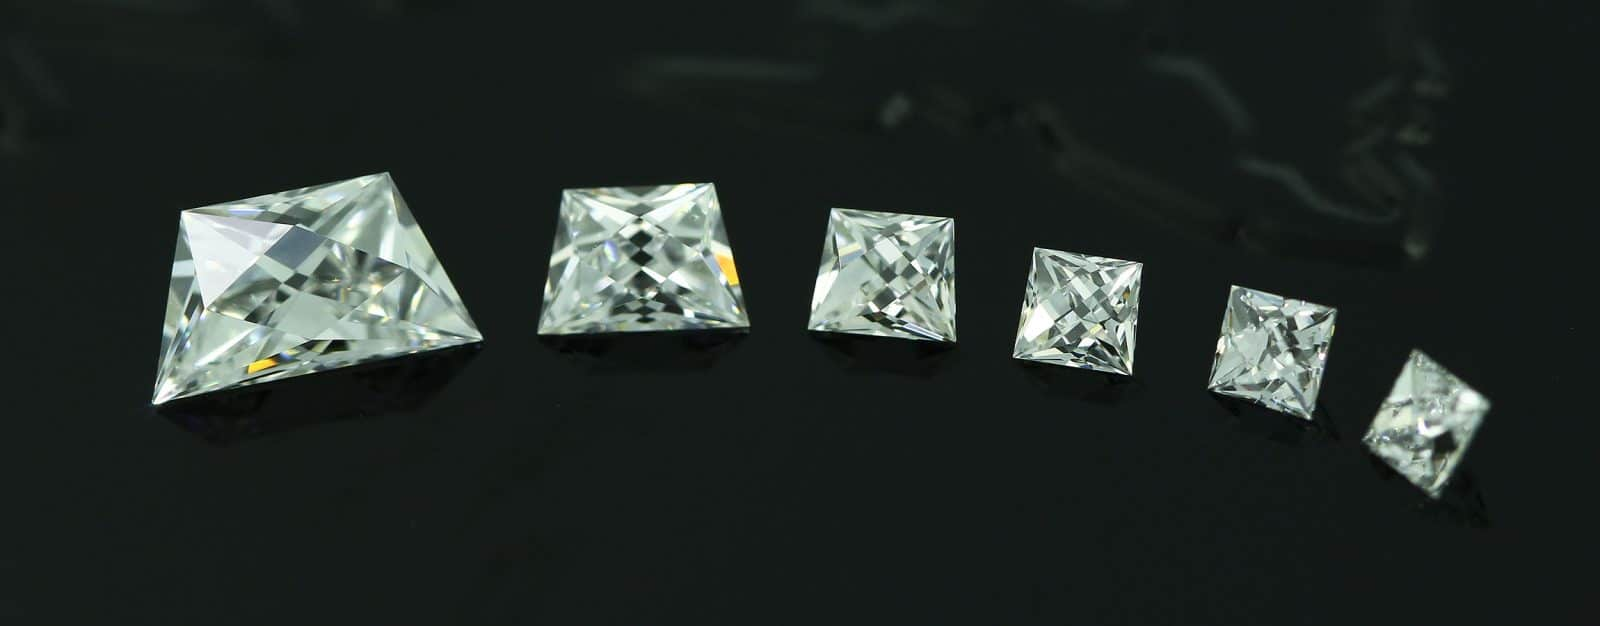 French Cut Diamonds Calibre Sets